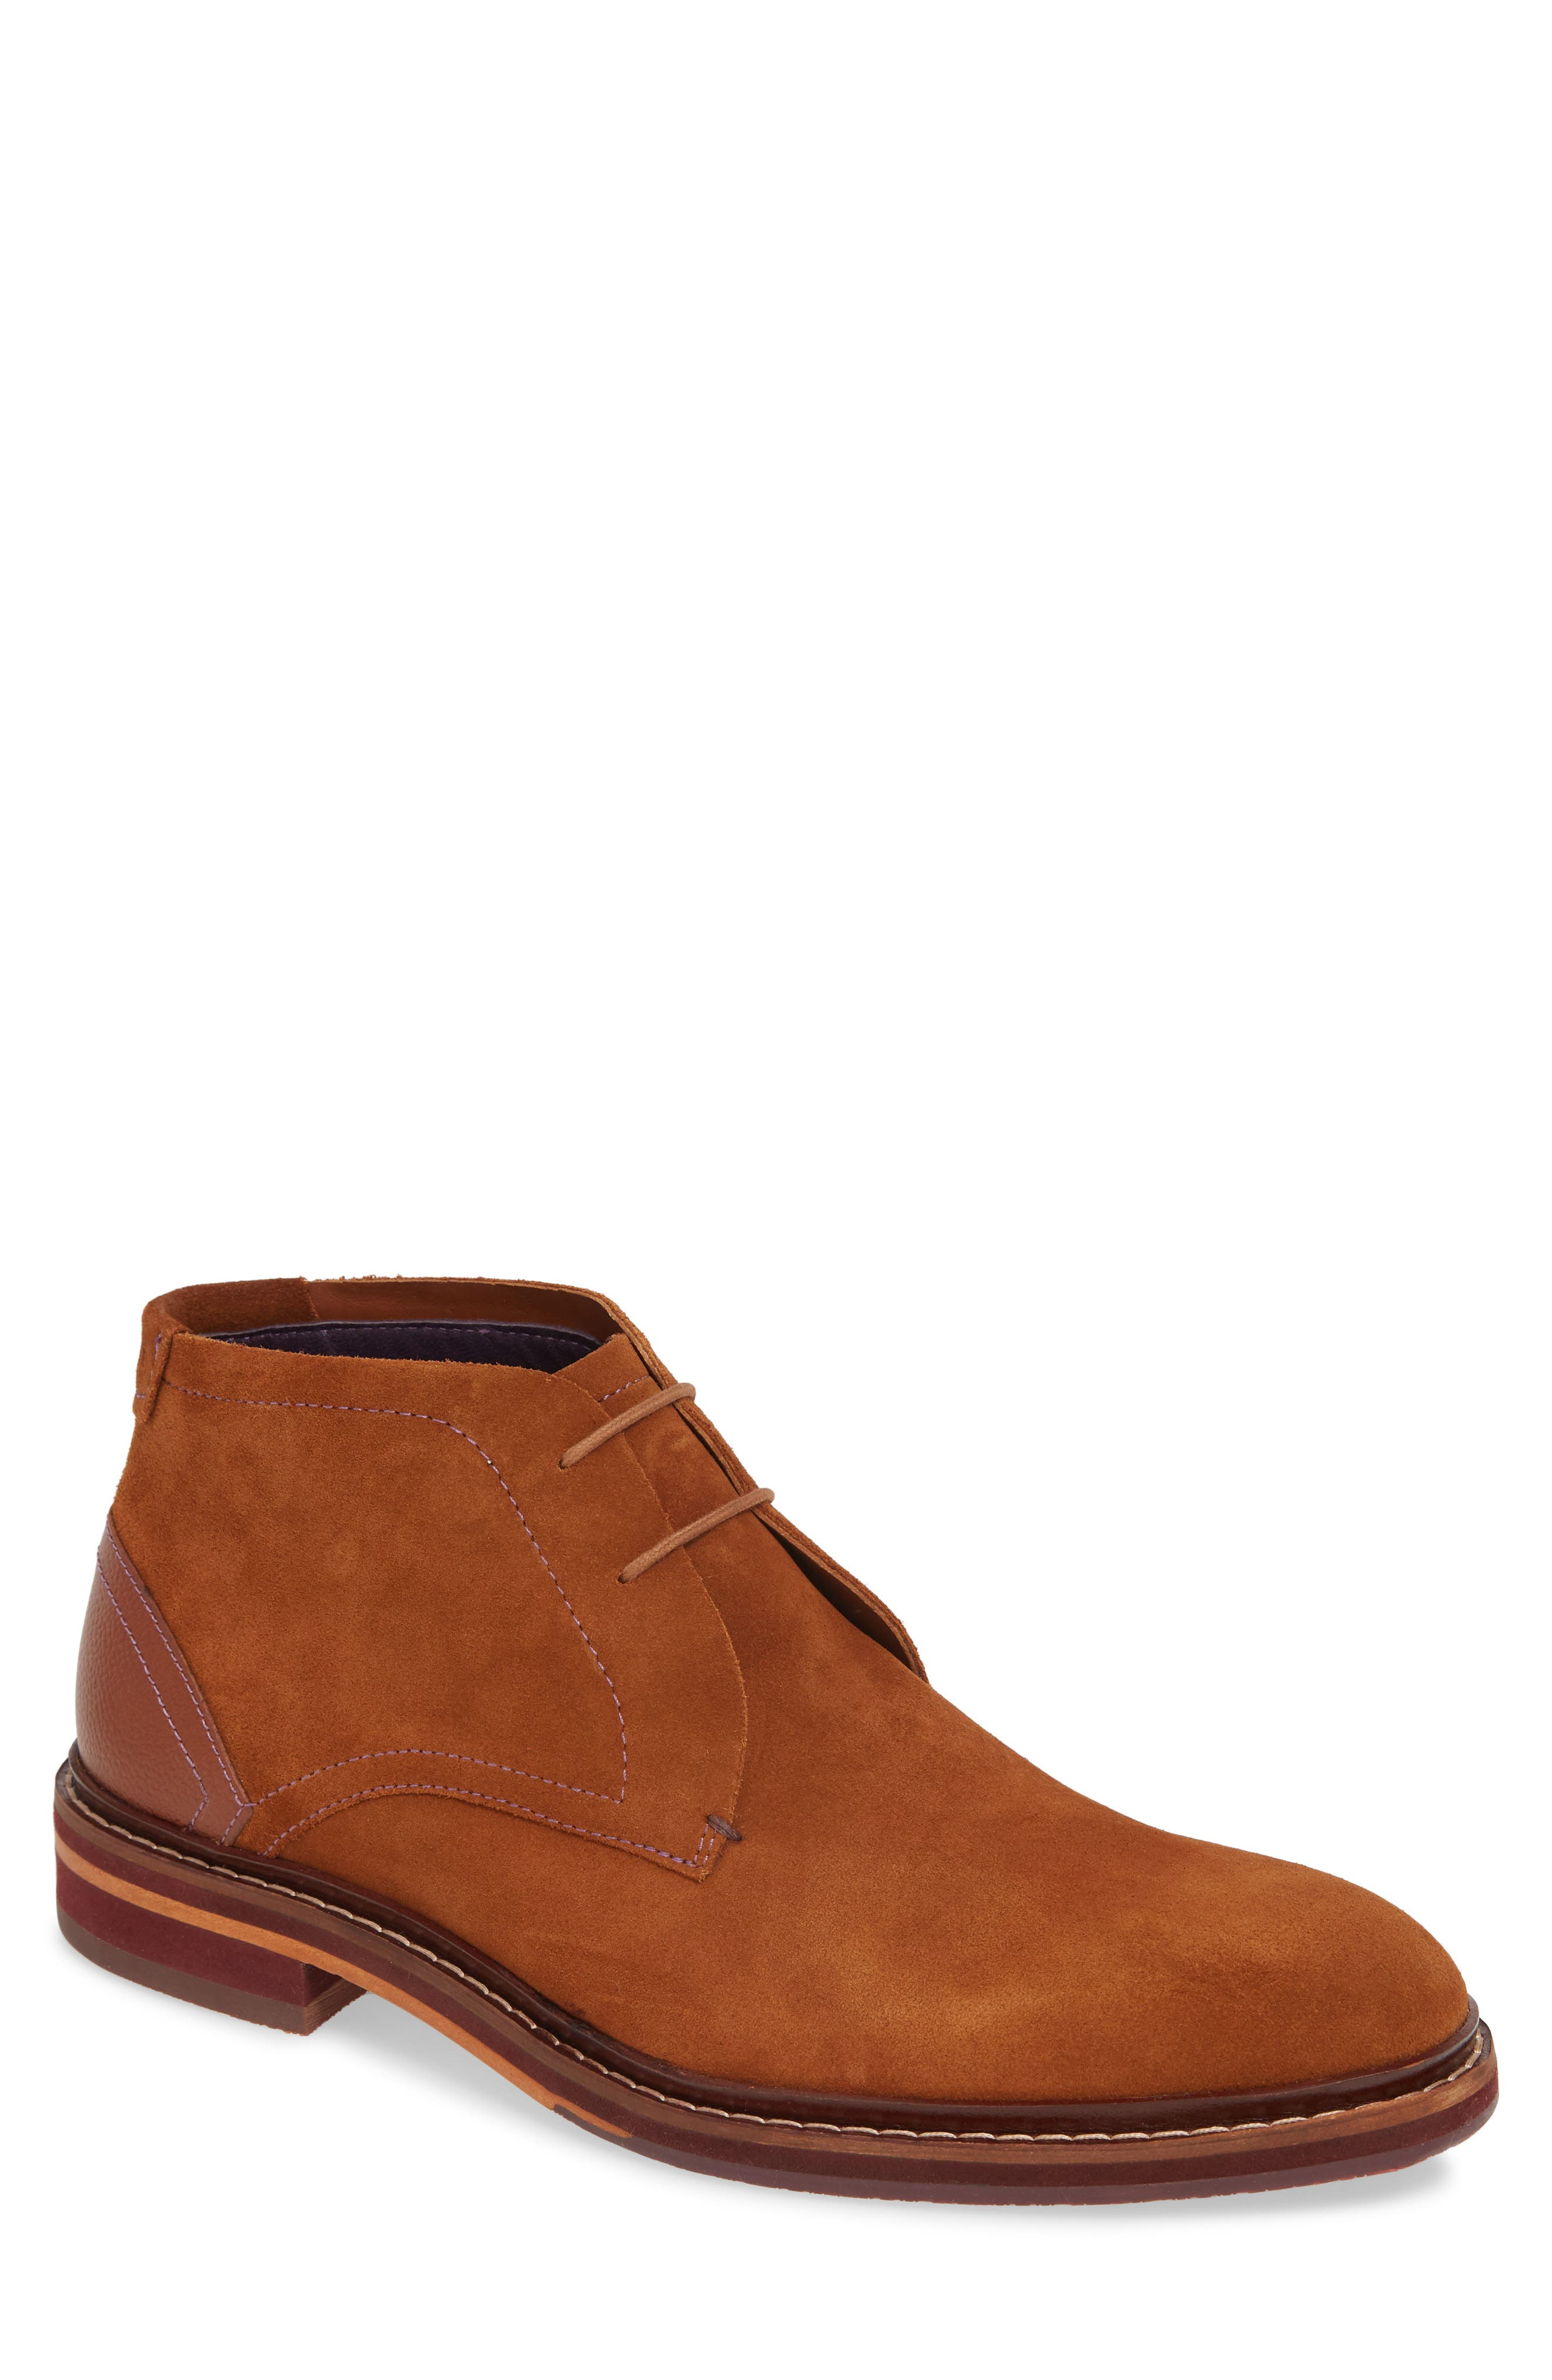 Ted Baker London Deligh Chukka Boot, Brown